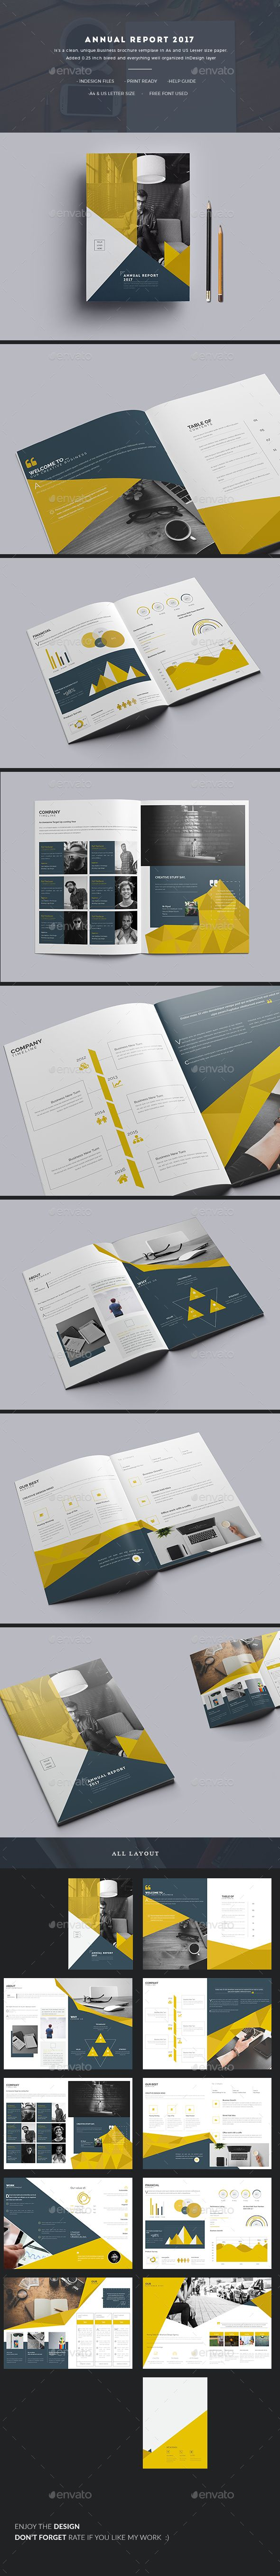 Annual Report 2017 Template InDesign INDD - 20 Pages, A4 & US Letter size